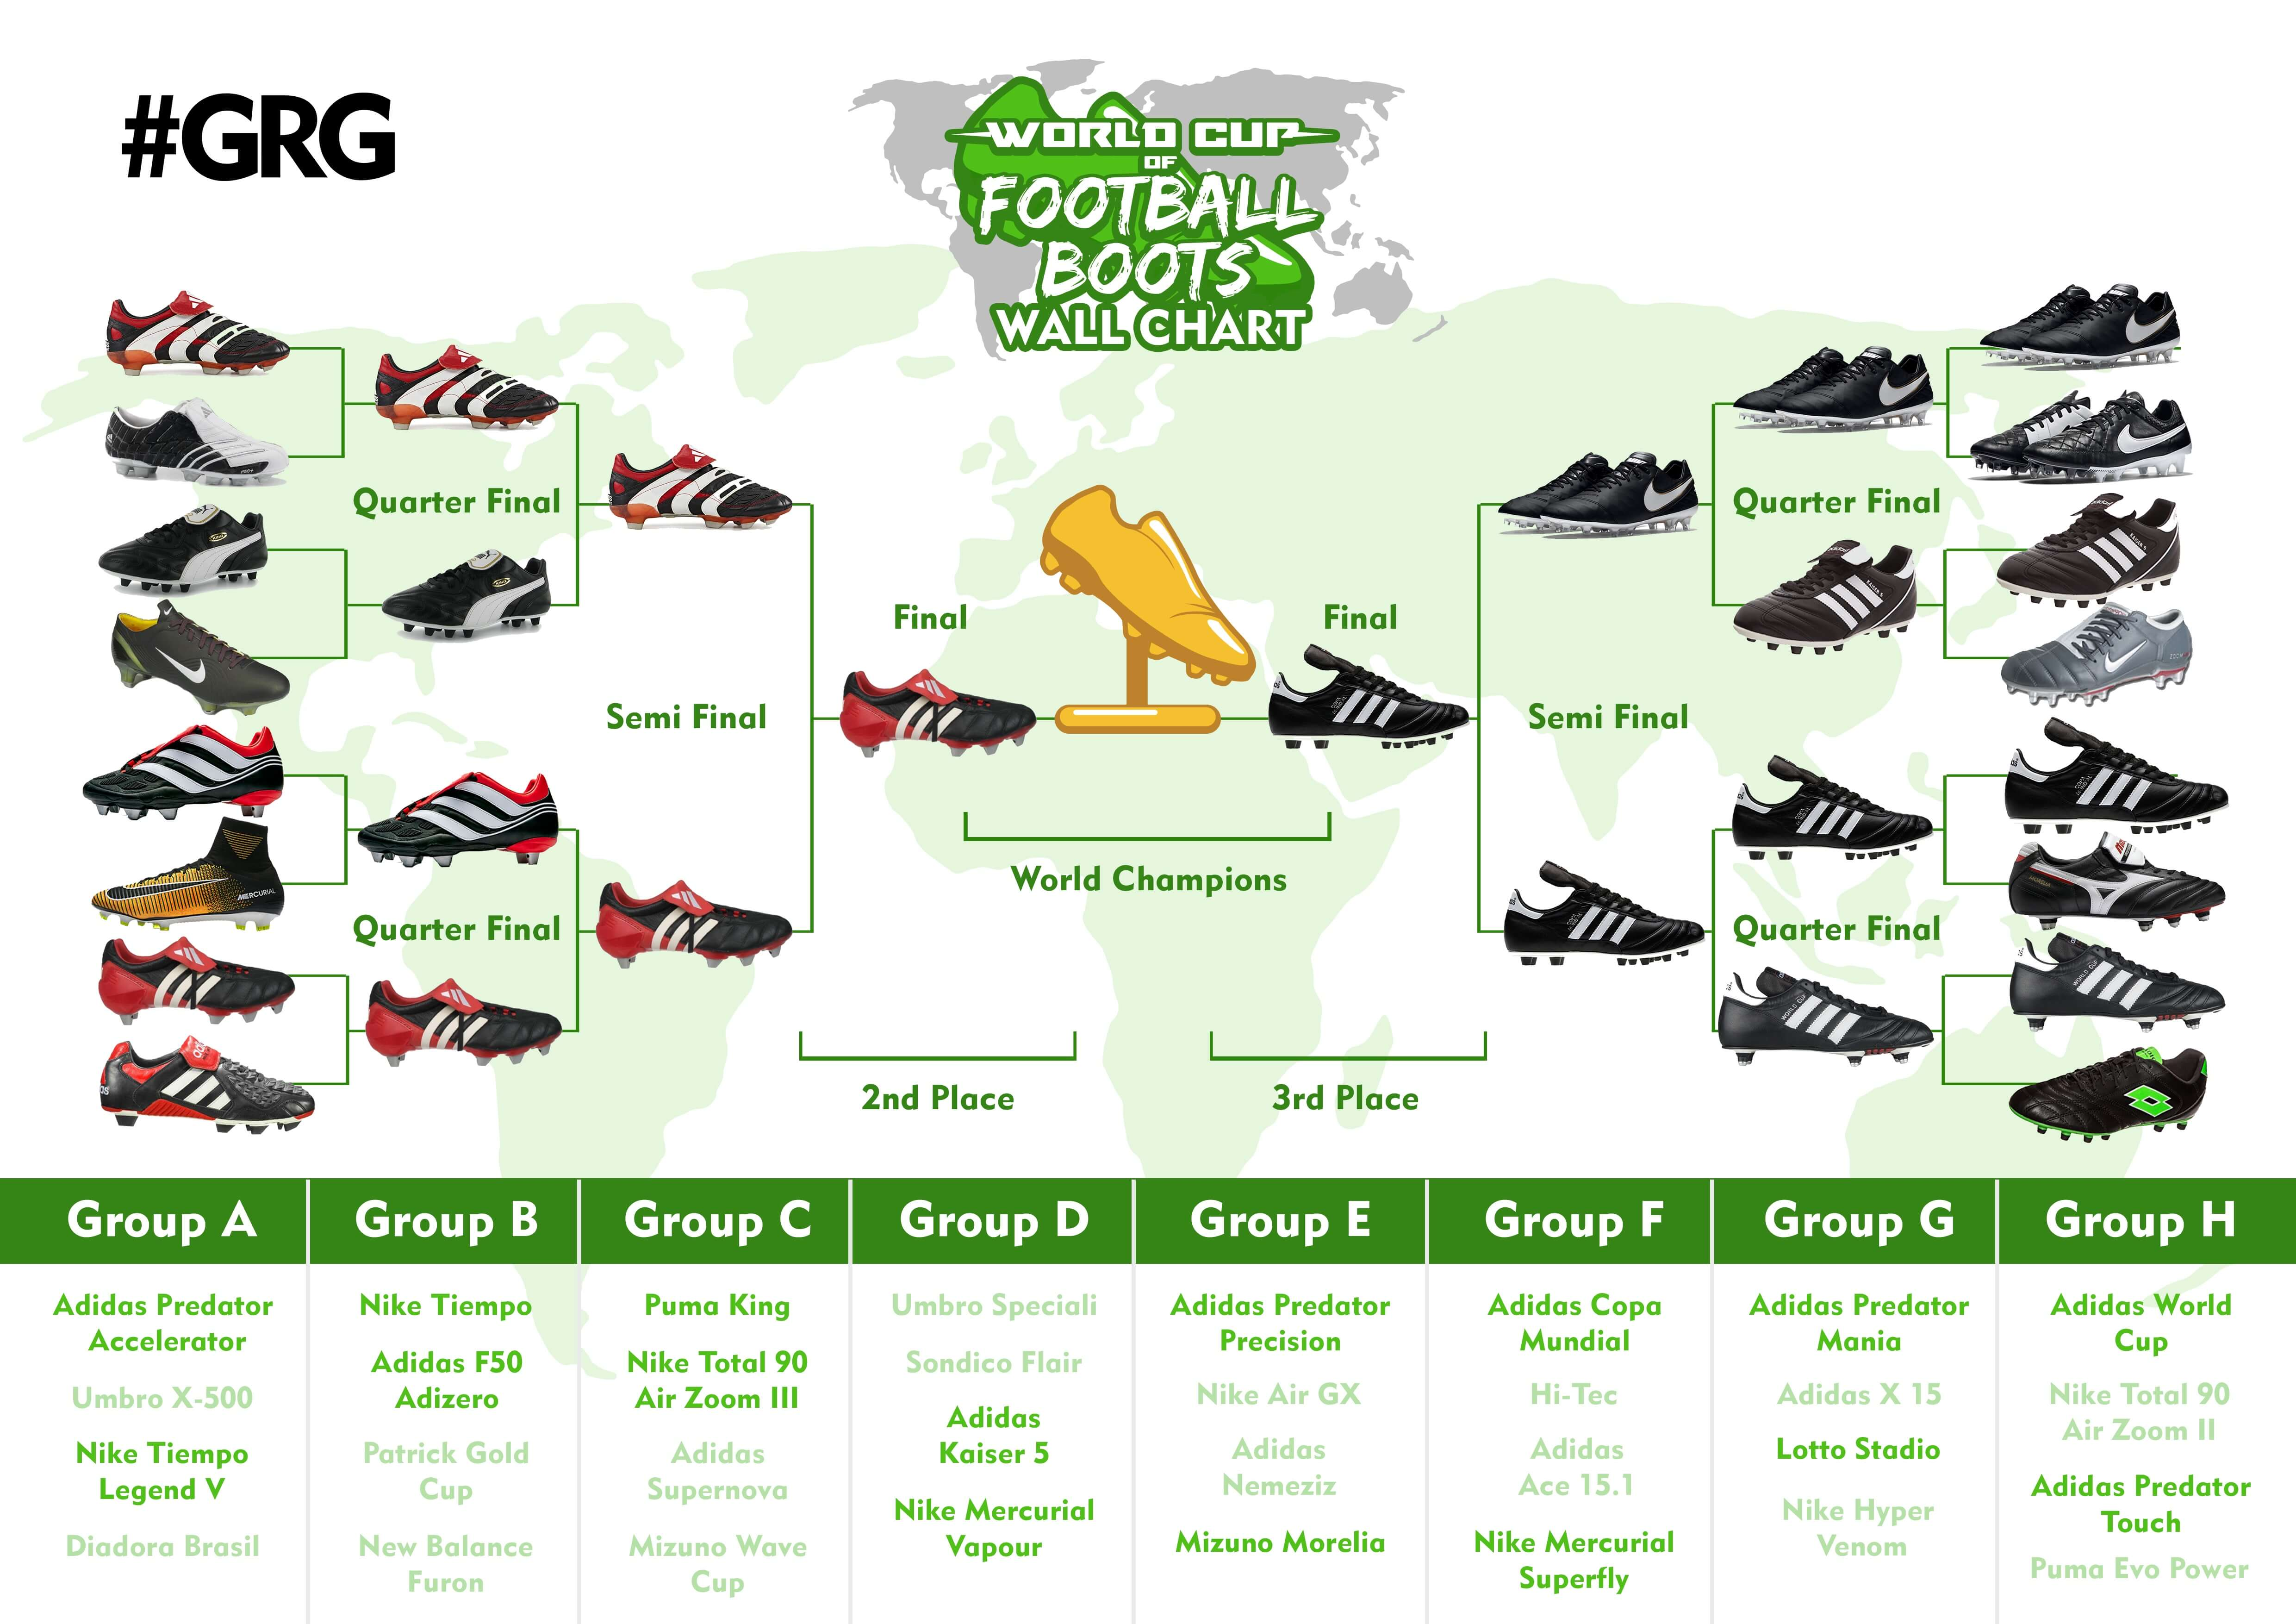 World Cup of Football Boots Wall Chart.jpg